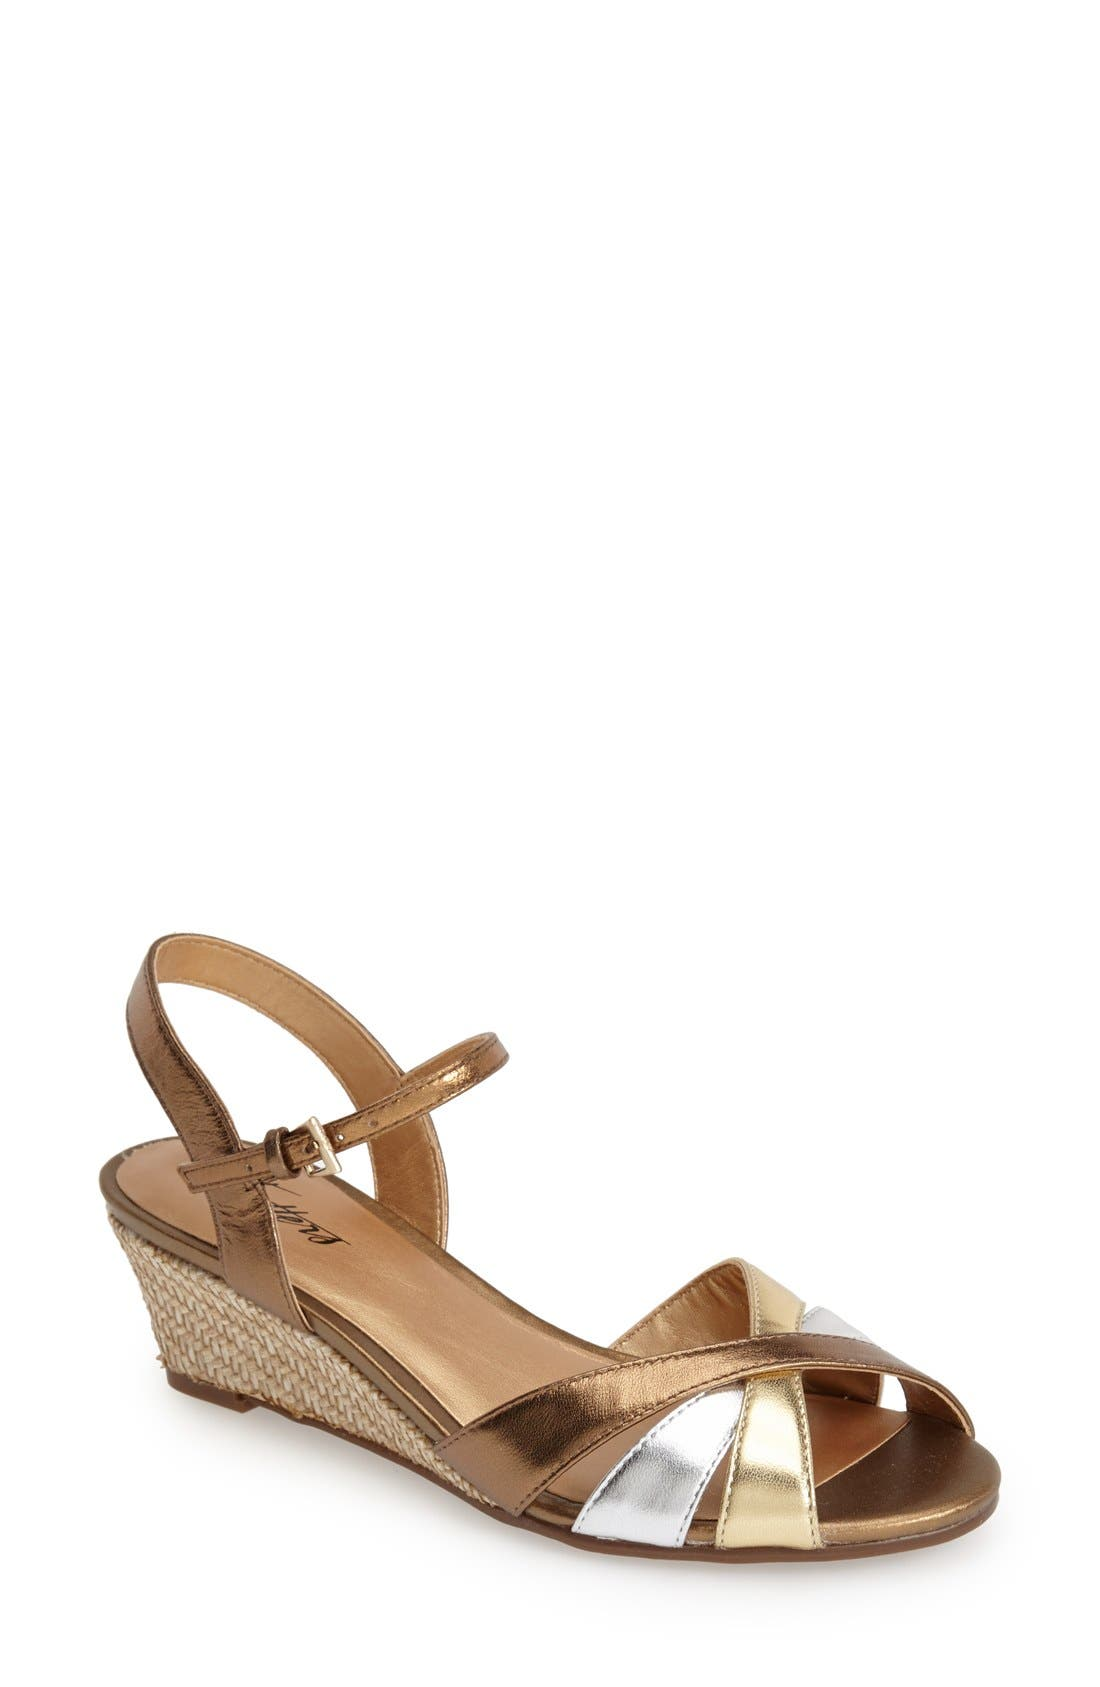 'Mickey' Wedge Sandal,                             Main thumbnail 5, color,